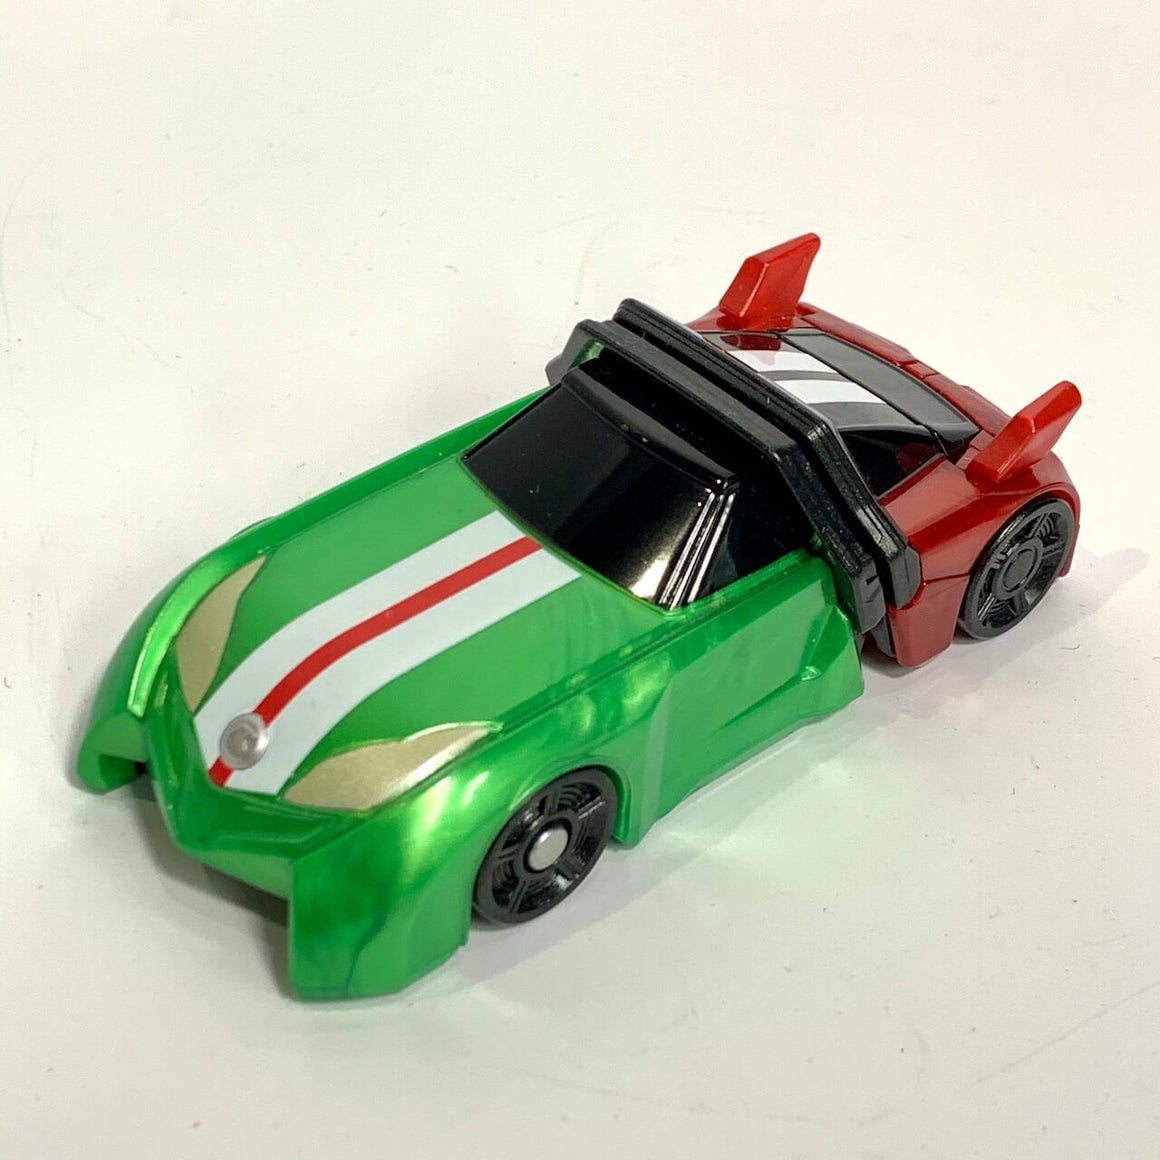 [LOOSE] Kamen Rider Drive: DX Shift Speed Wild Technic (Movie Exclusive -Rare-)